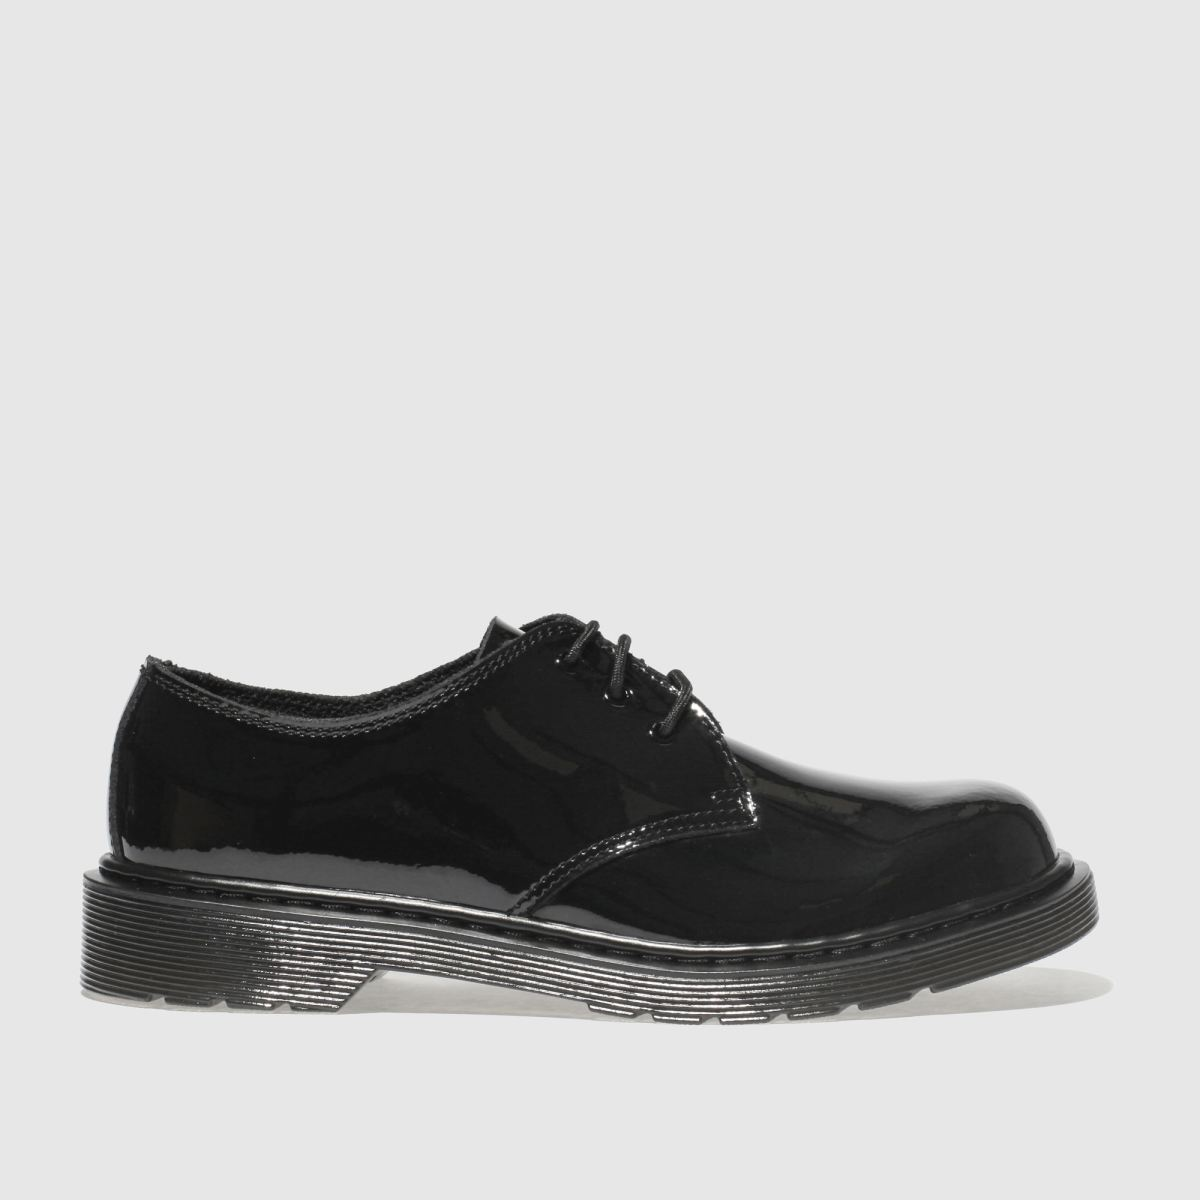 dr martens black everley Girls Youth Shoes